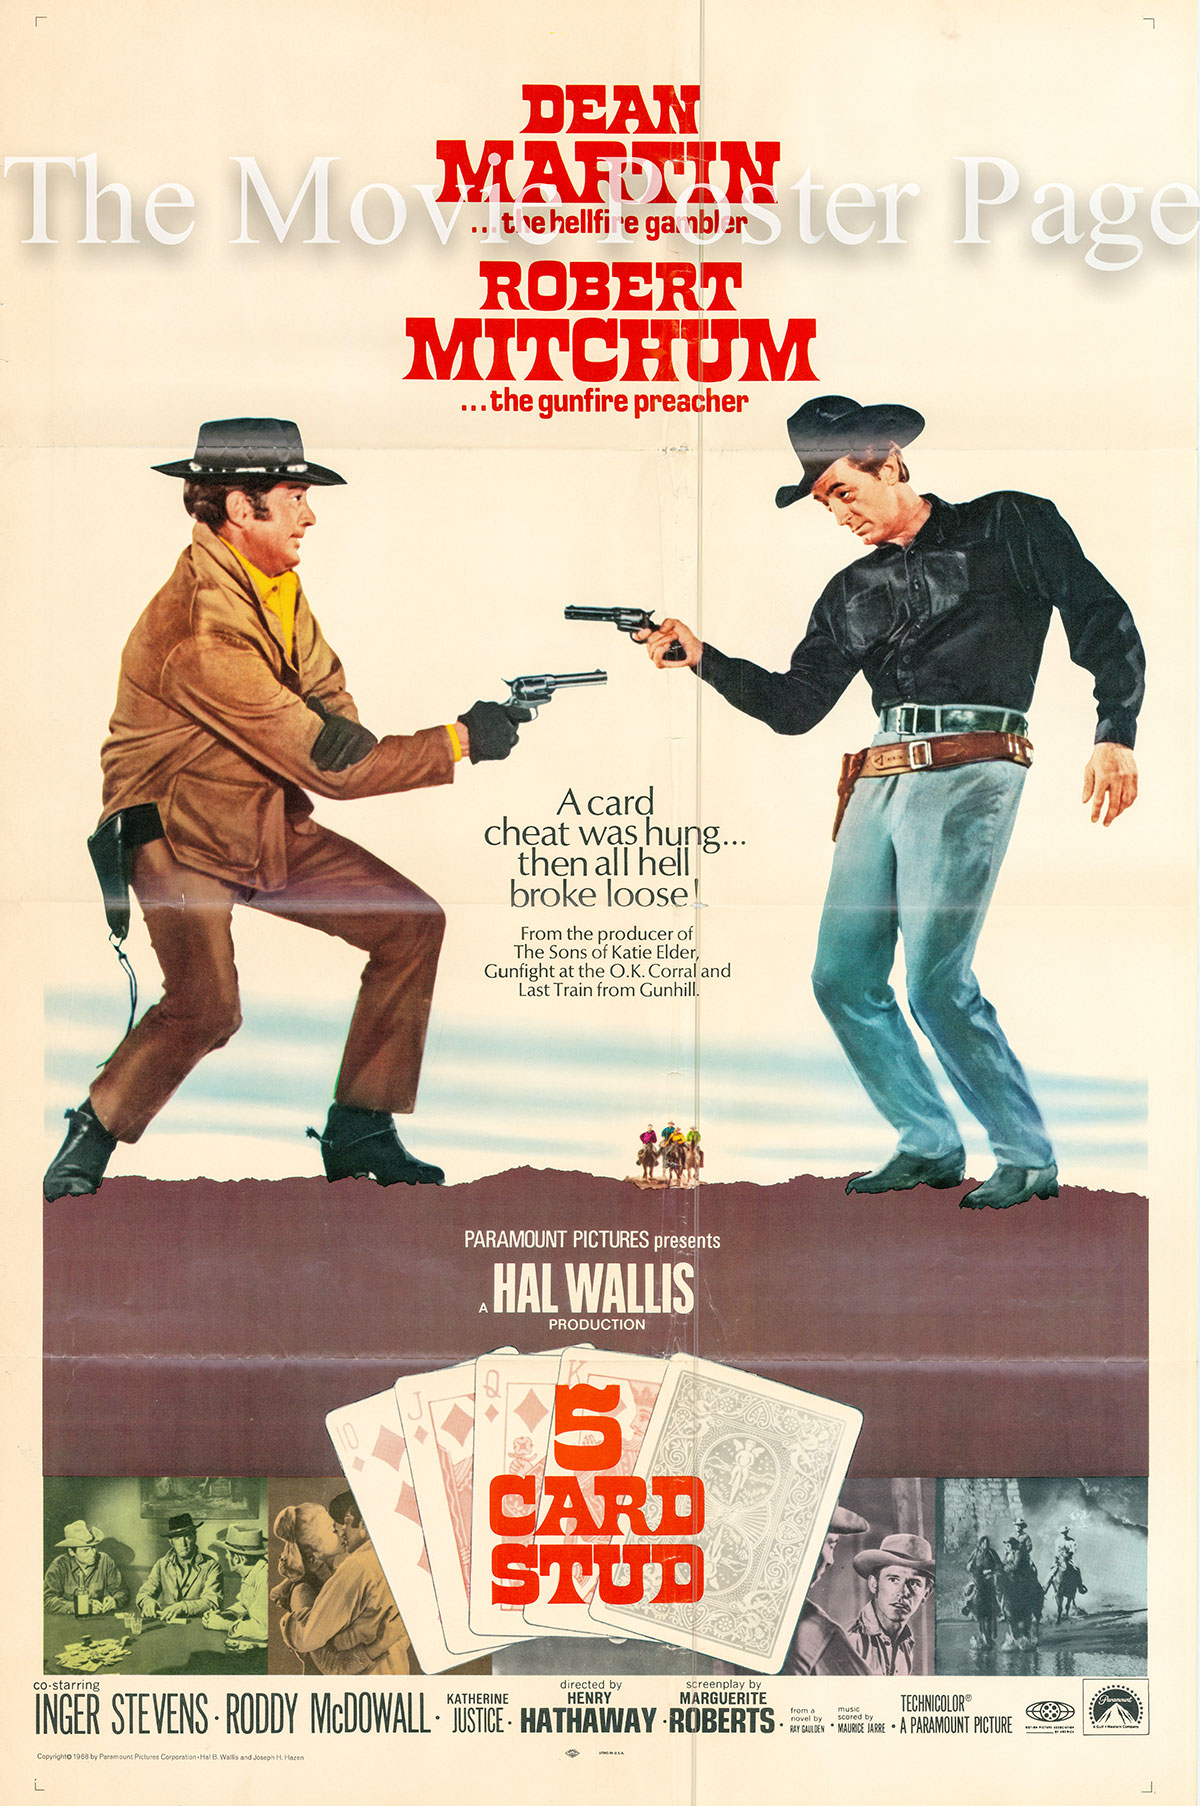 Pictured is a US one-sheet promotional poster for the 1968 Henry Hathaway film Five Card Stud starring Dean Martin and Robert Mitchum.